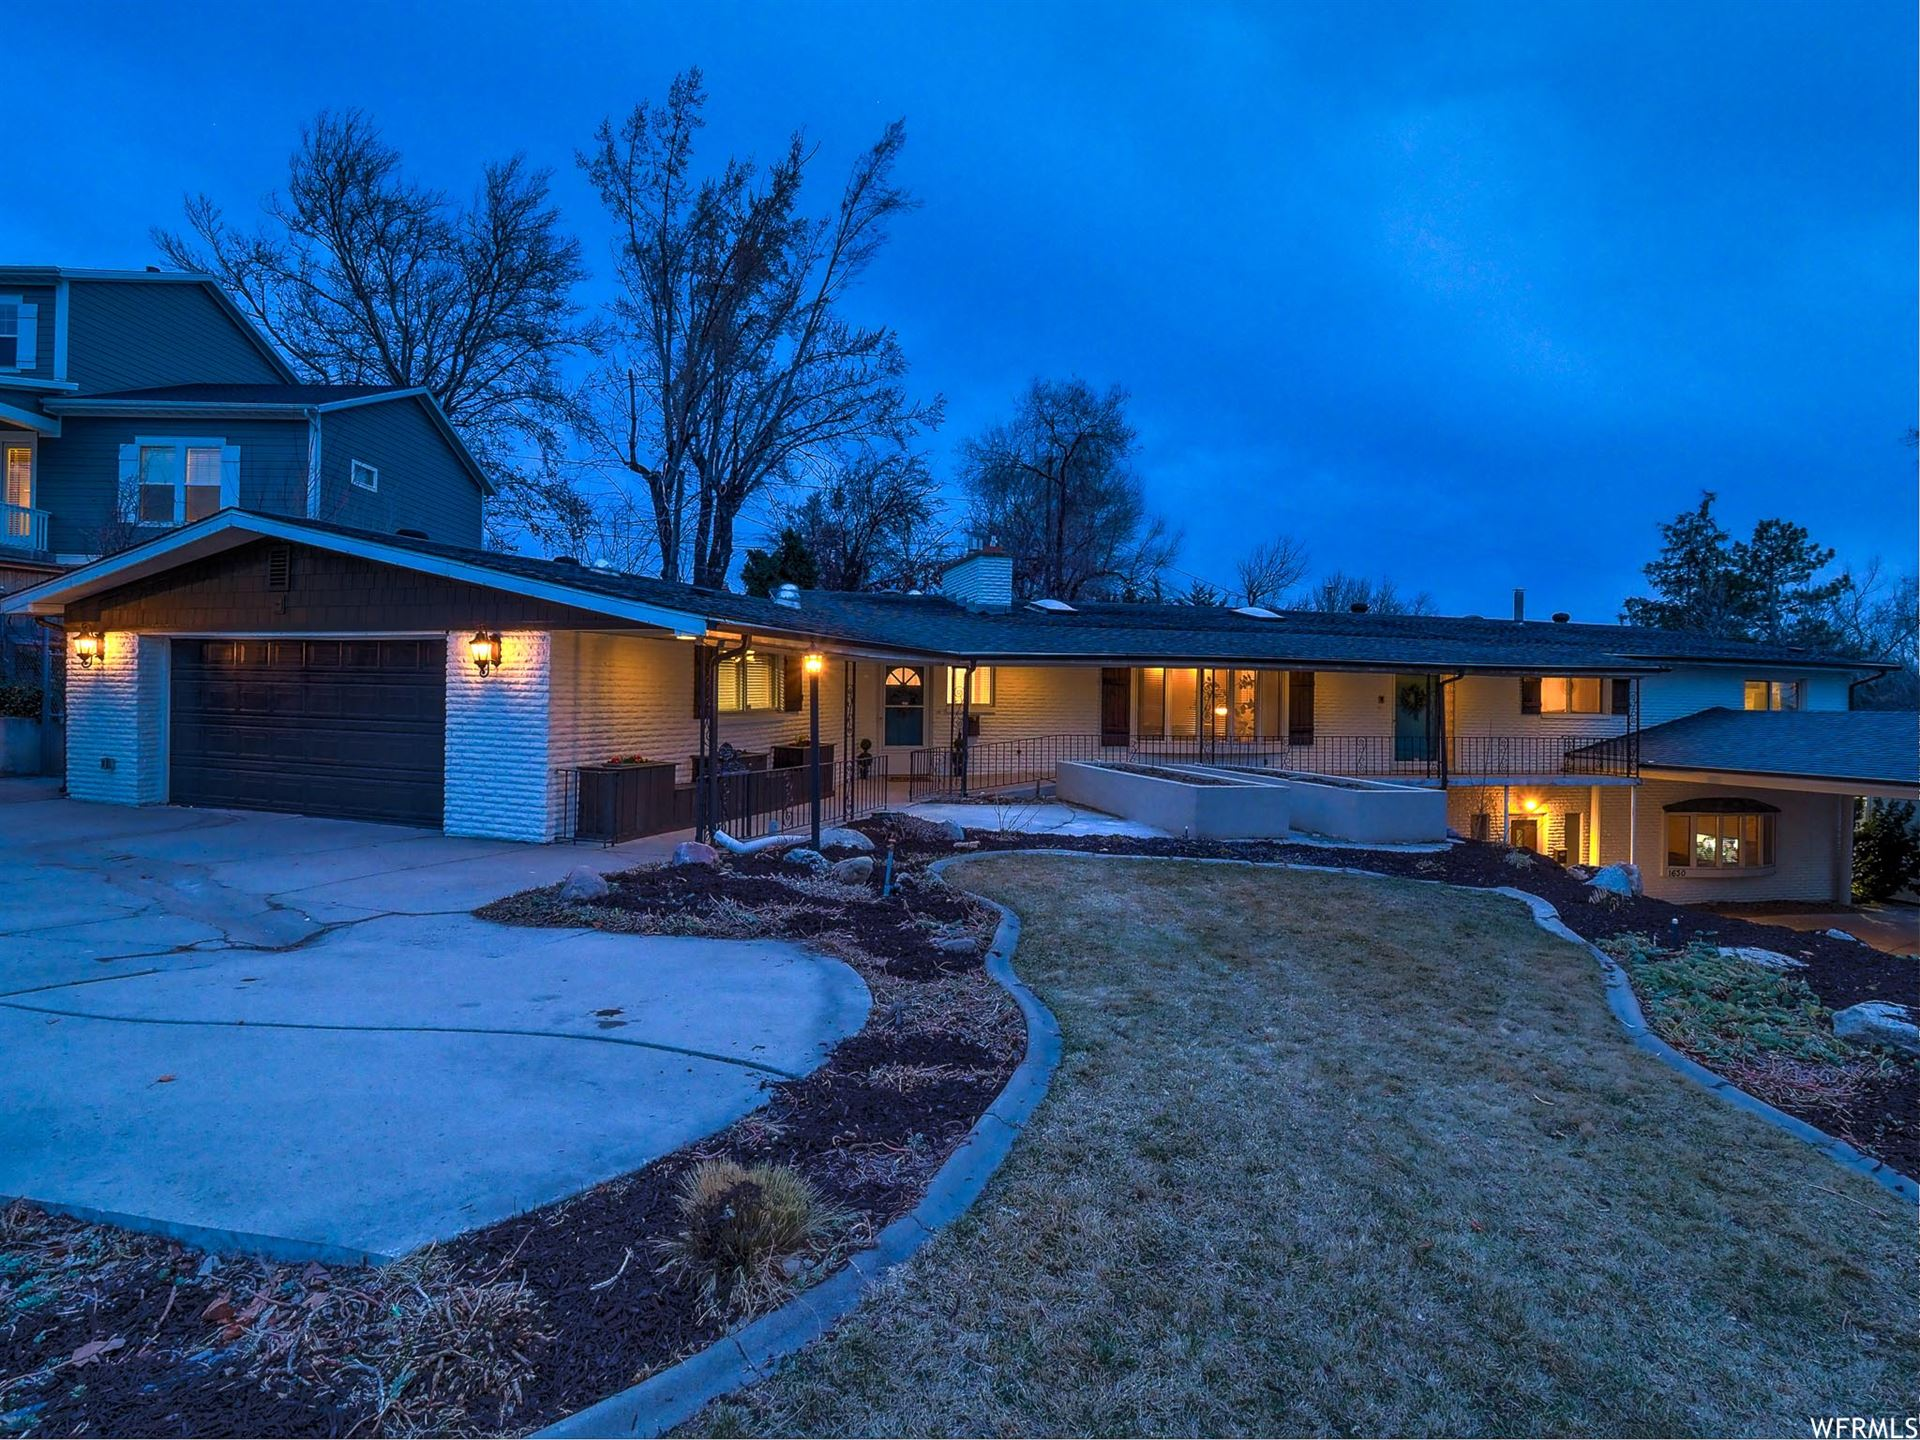 Photo of 1640 E 1700 S, Salt Lake City, UT 84105 (MLS # 1729041)